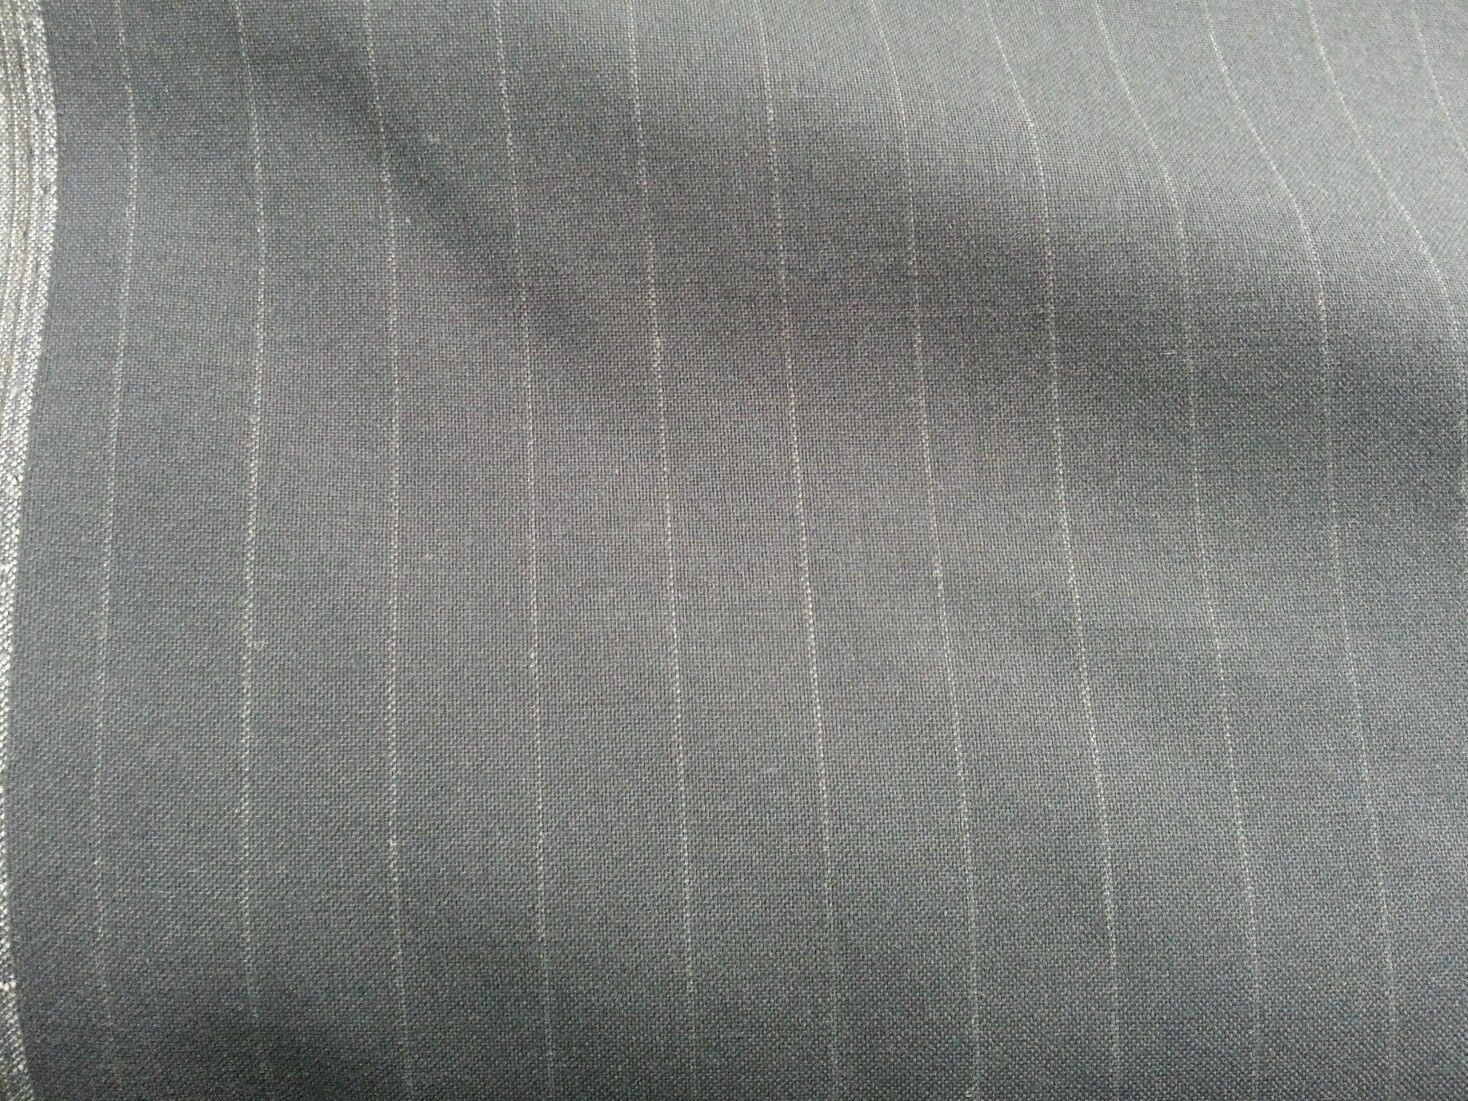 8 YARDS  SUPER 130'S ENGLISH WOOL WORSTED PIN STRIPESUITING FABRIC MSRP $1200